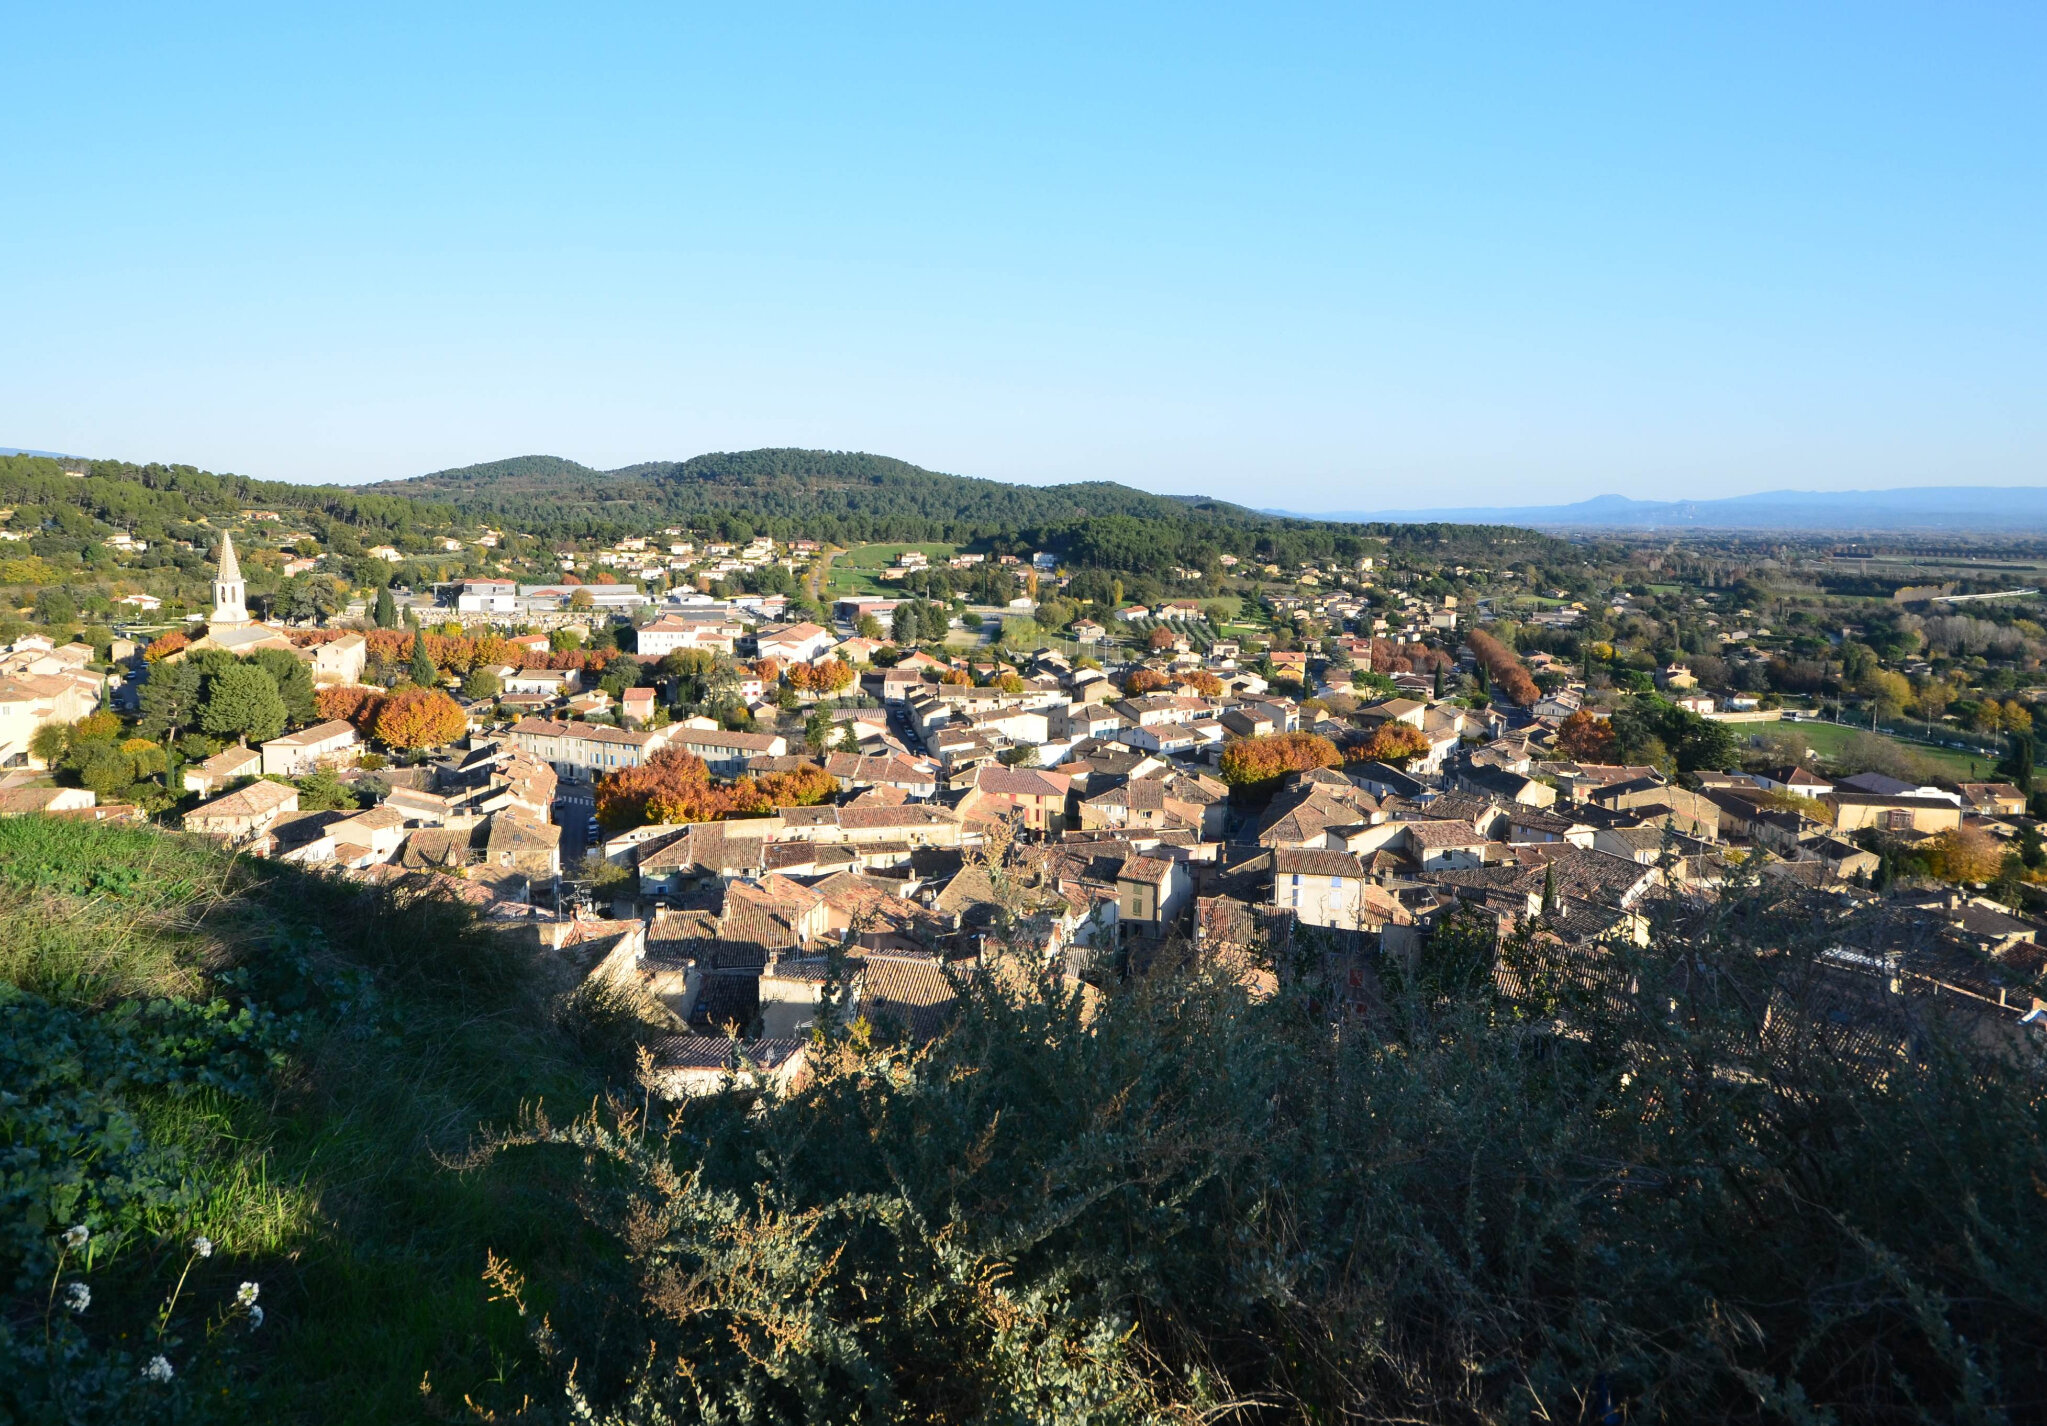 Cadenet et son village troglodytique